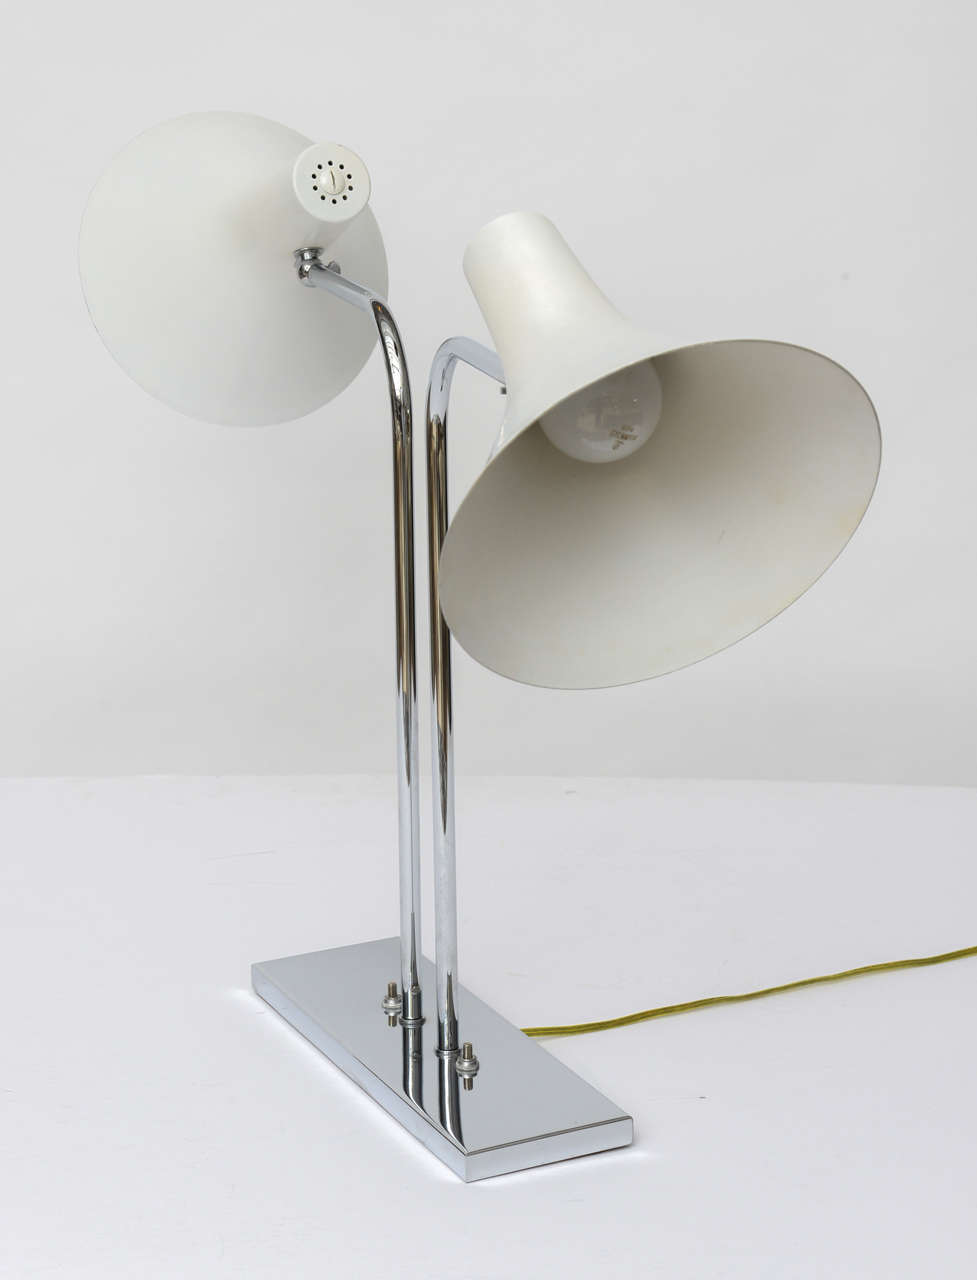 1960's Nessen Studios Polished Chrome and White Enamel Double Arm Desk Lamp For Sale 1